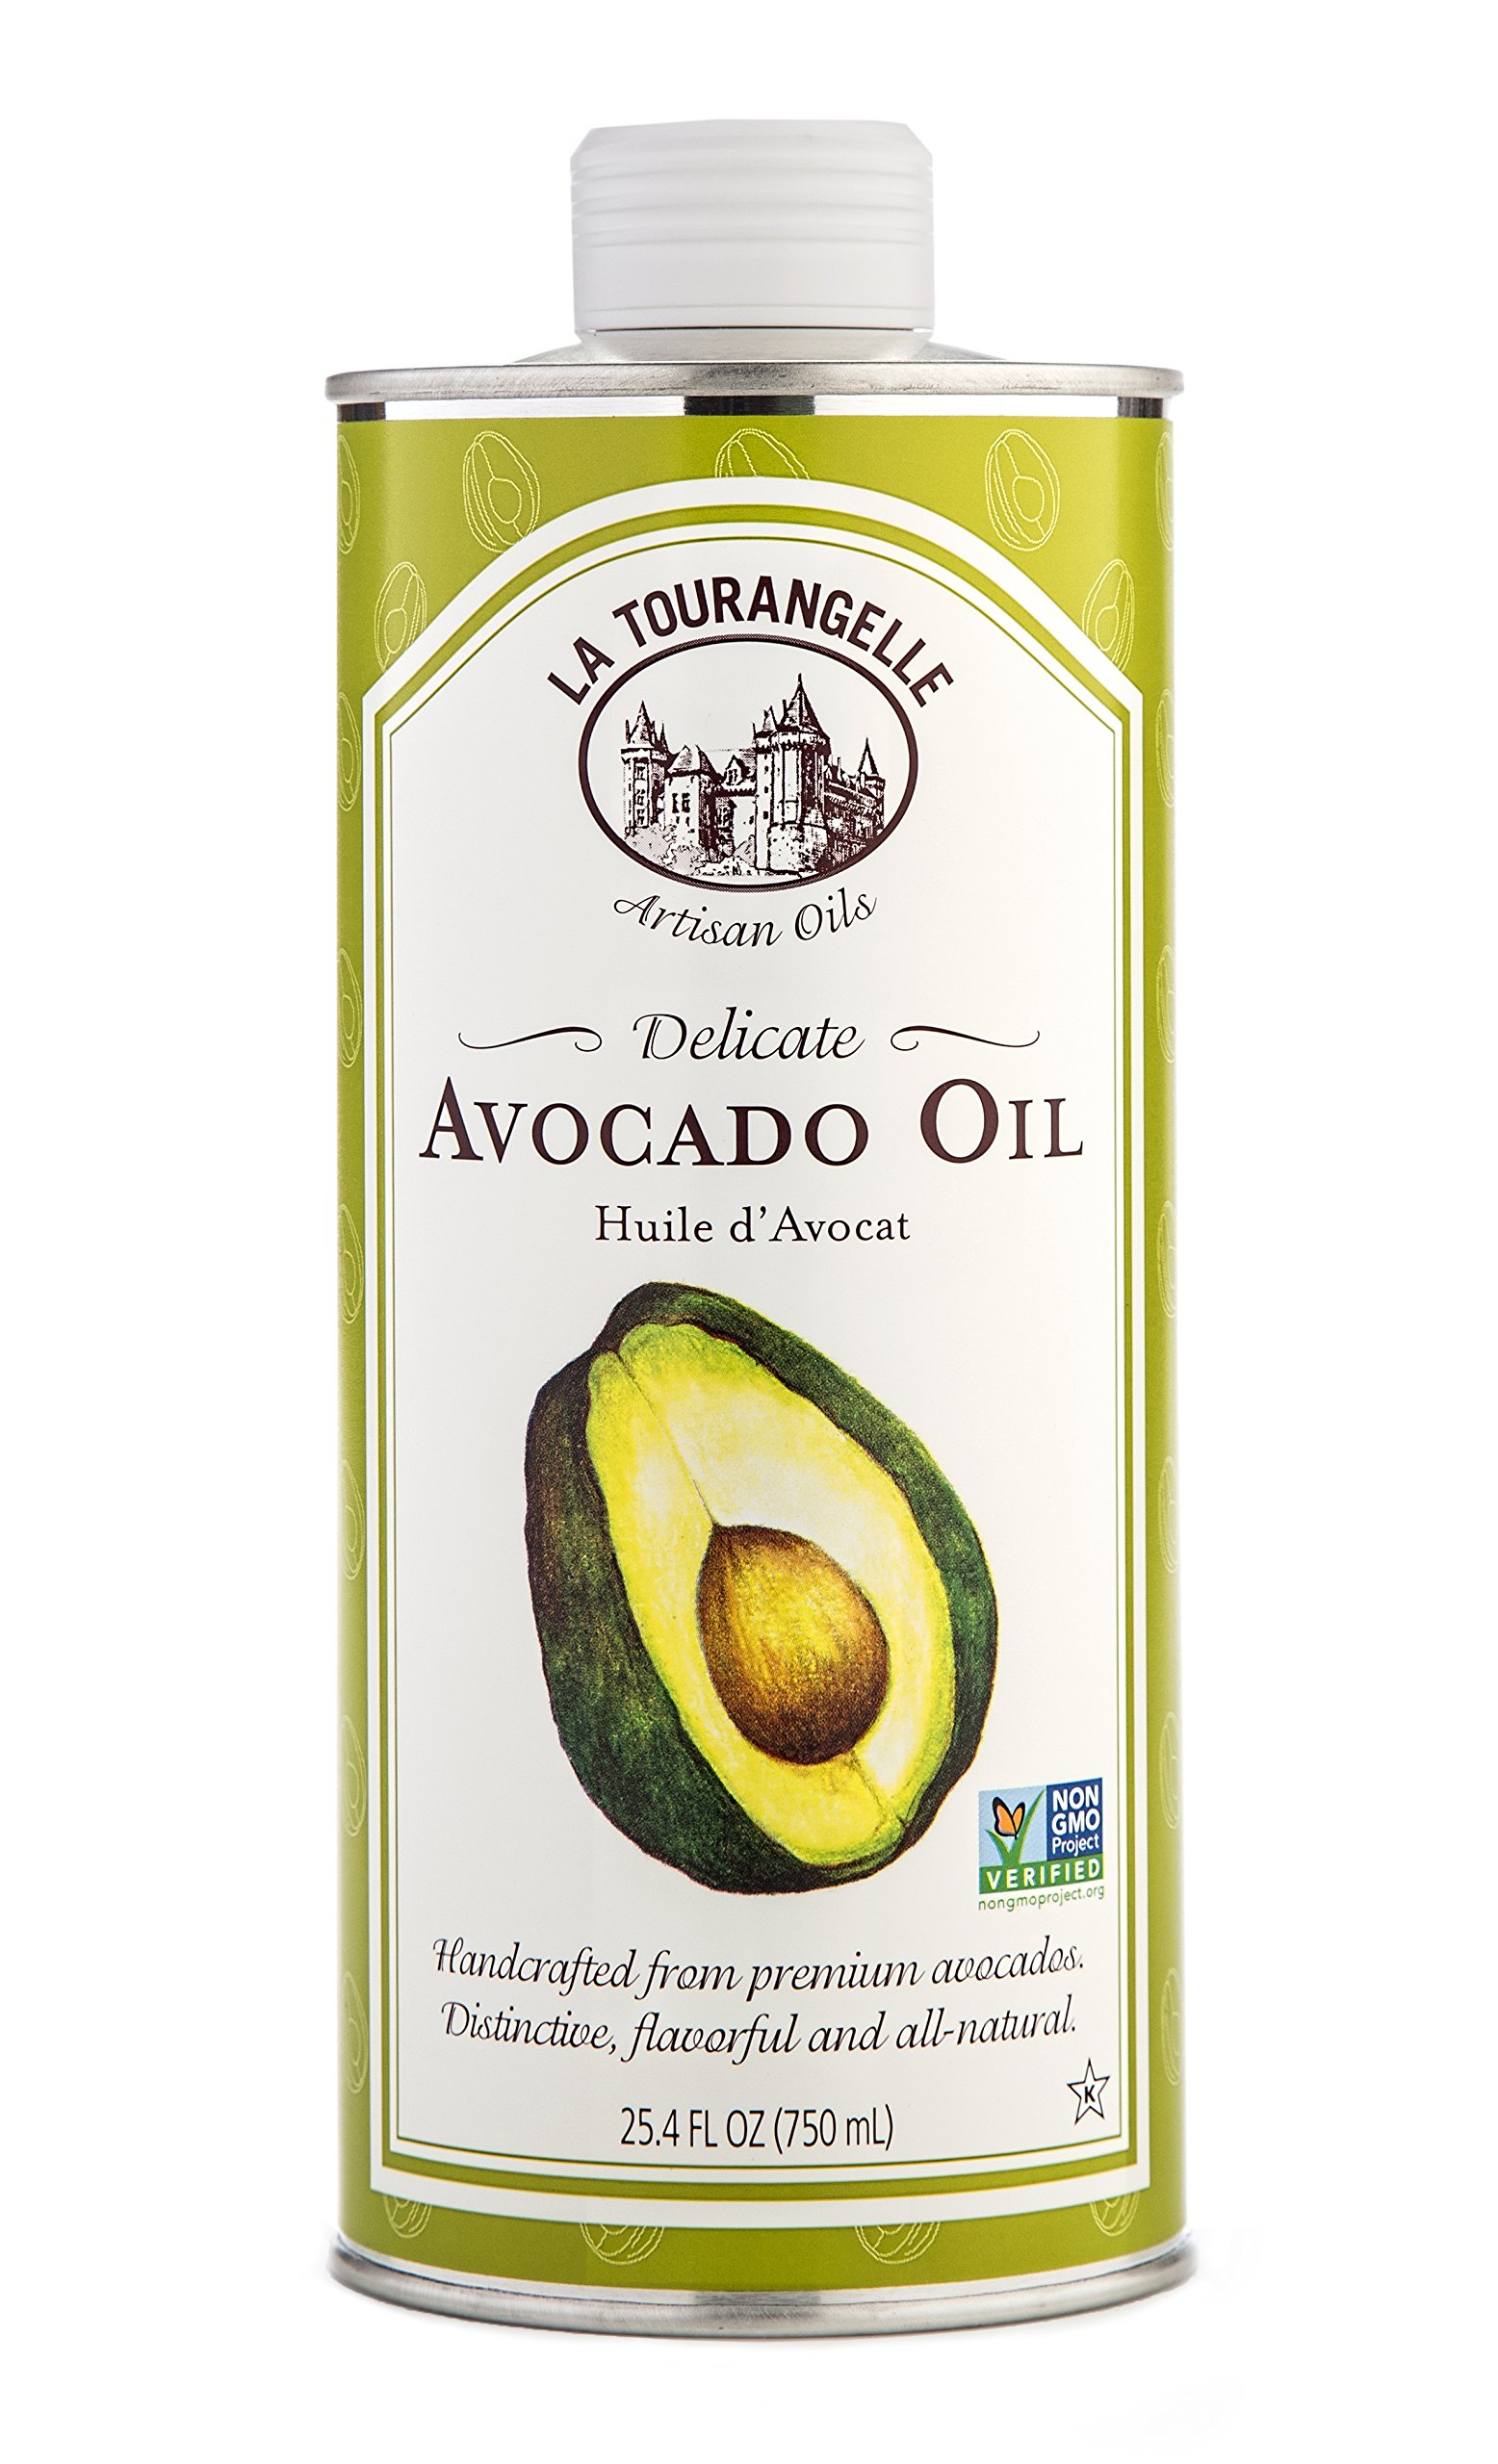 La Tourangelle Avocado Oil 25.4 Fl. Oz., All-Natural, Artisanal, Great for Salads, Fruit, Fish or Vegetables, Great Buttery Flavor by La Tourangelle (Image #1)